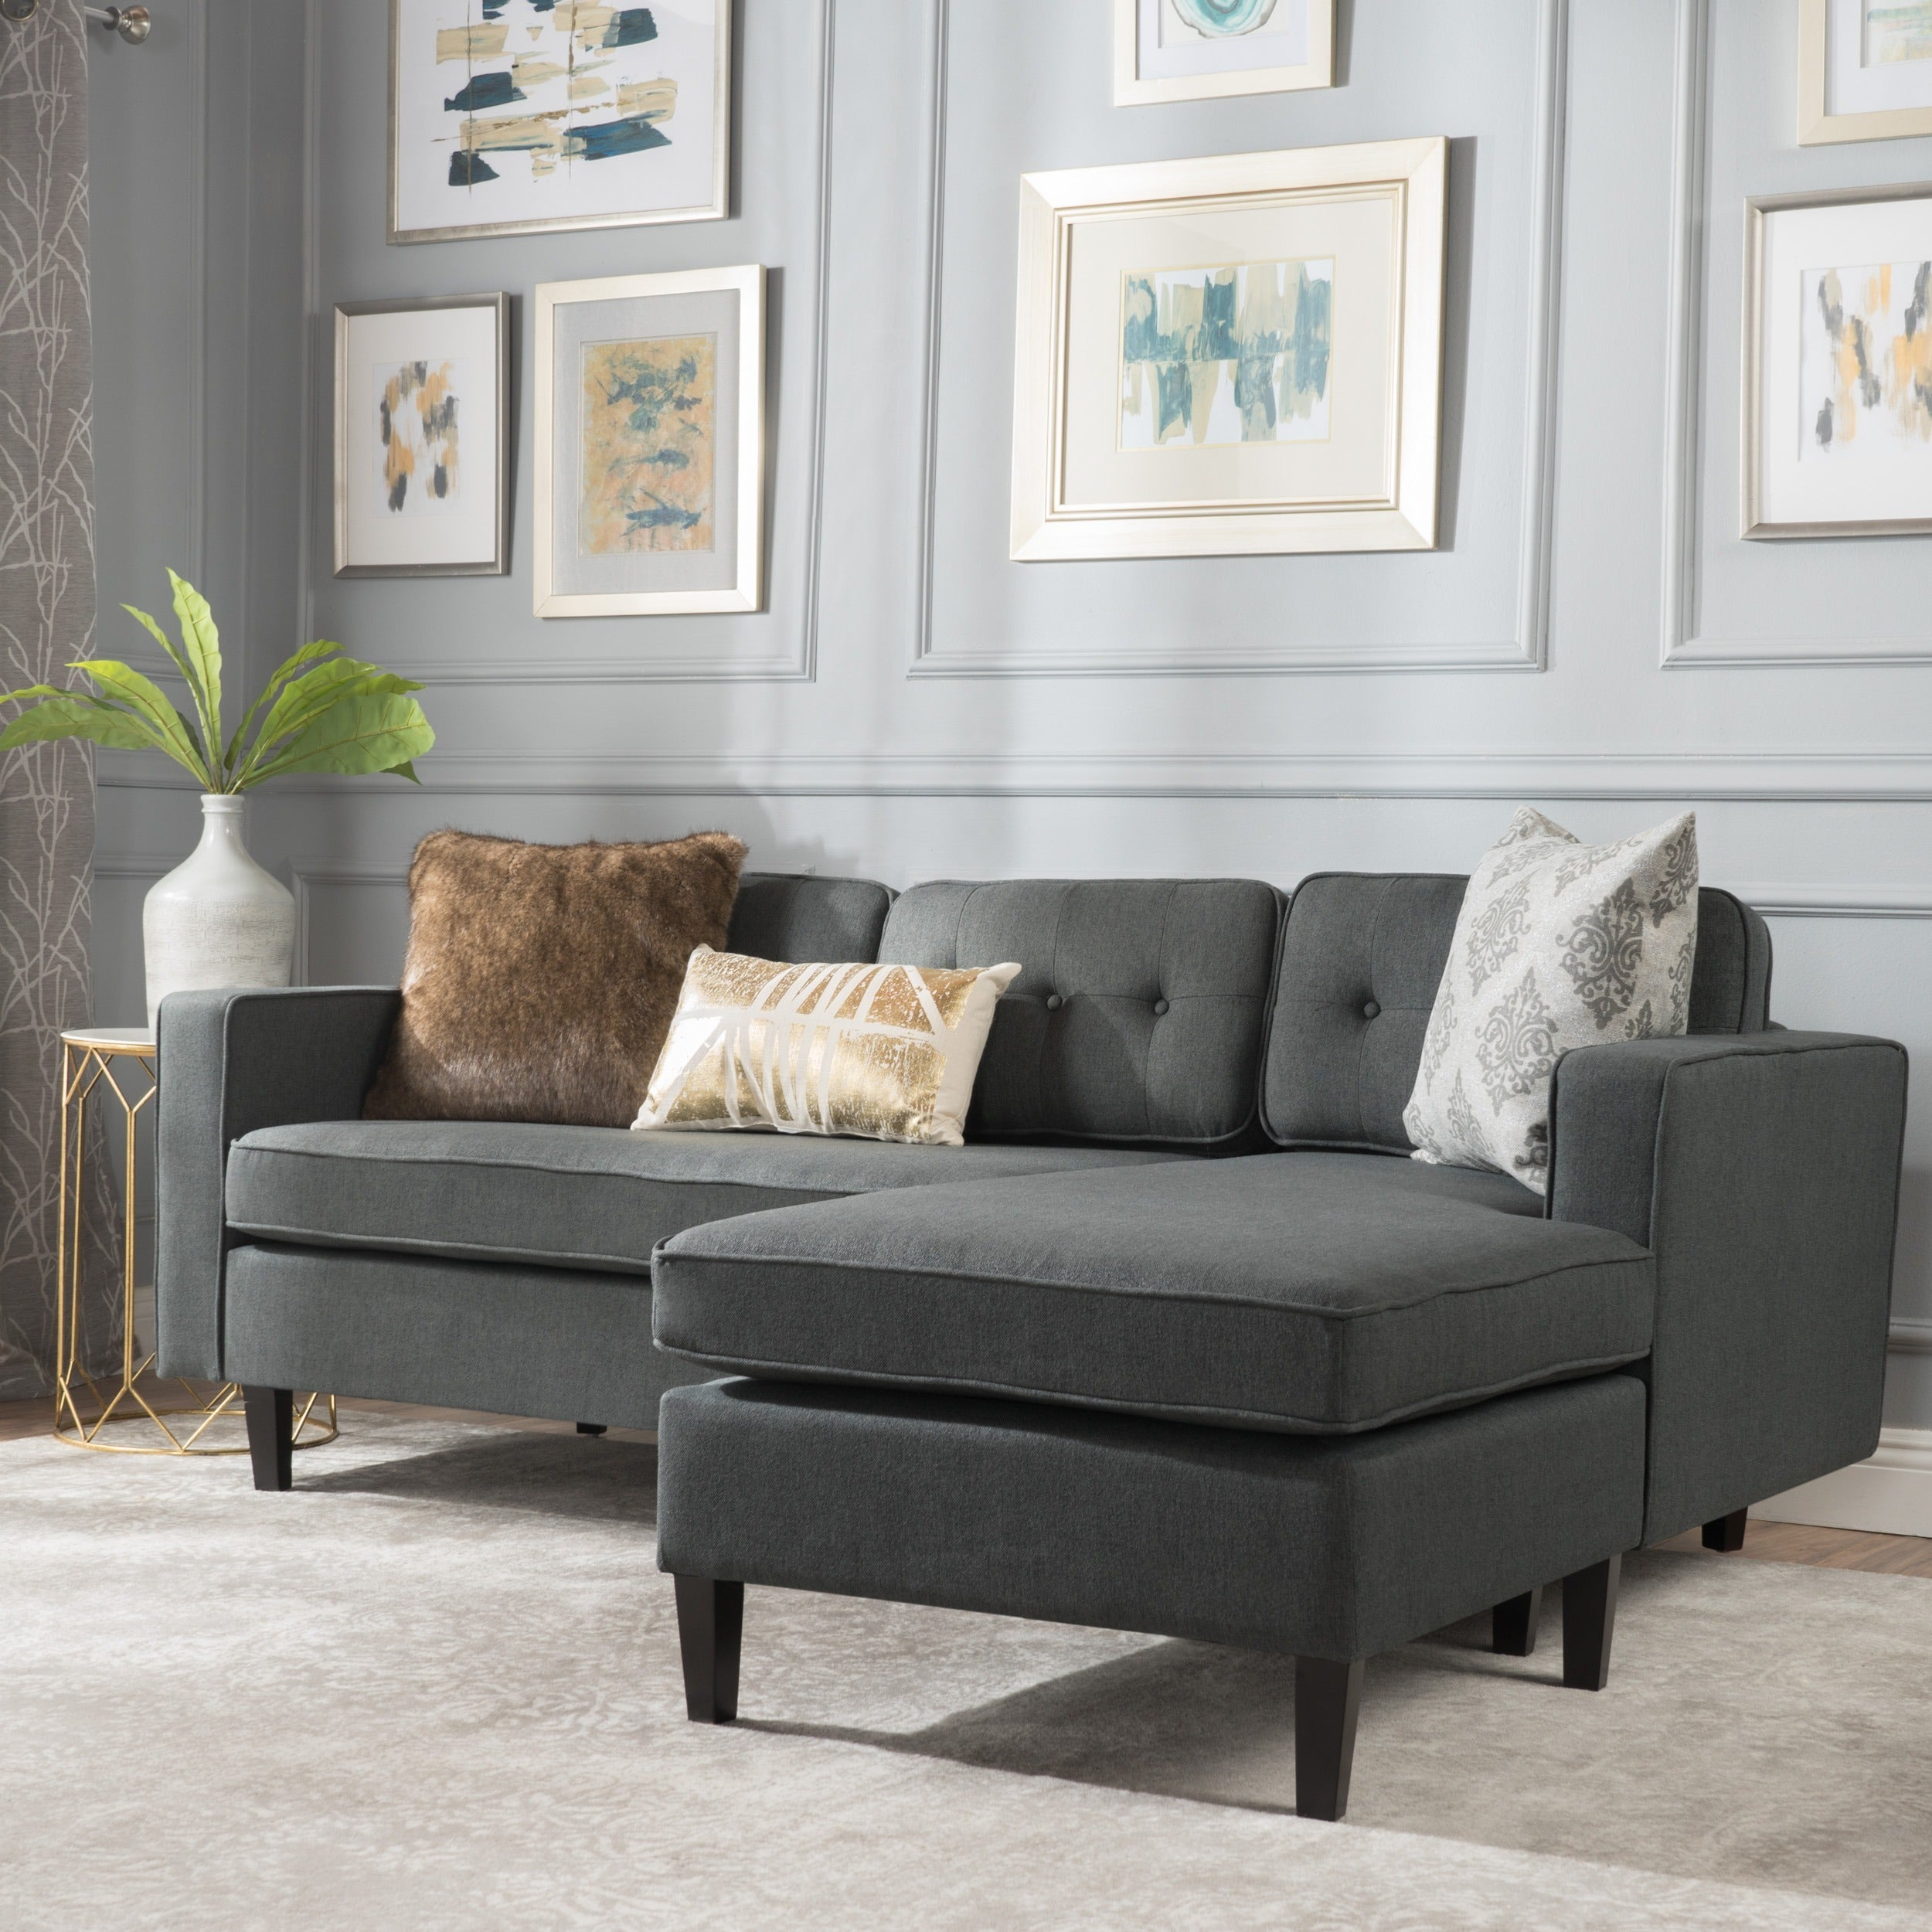 Wilder Mid-century Modern 2-piece Fabric Chaise Sectional Sofa by  Christopher Knight Home